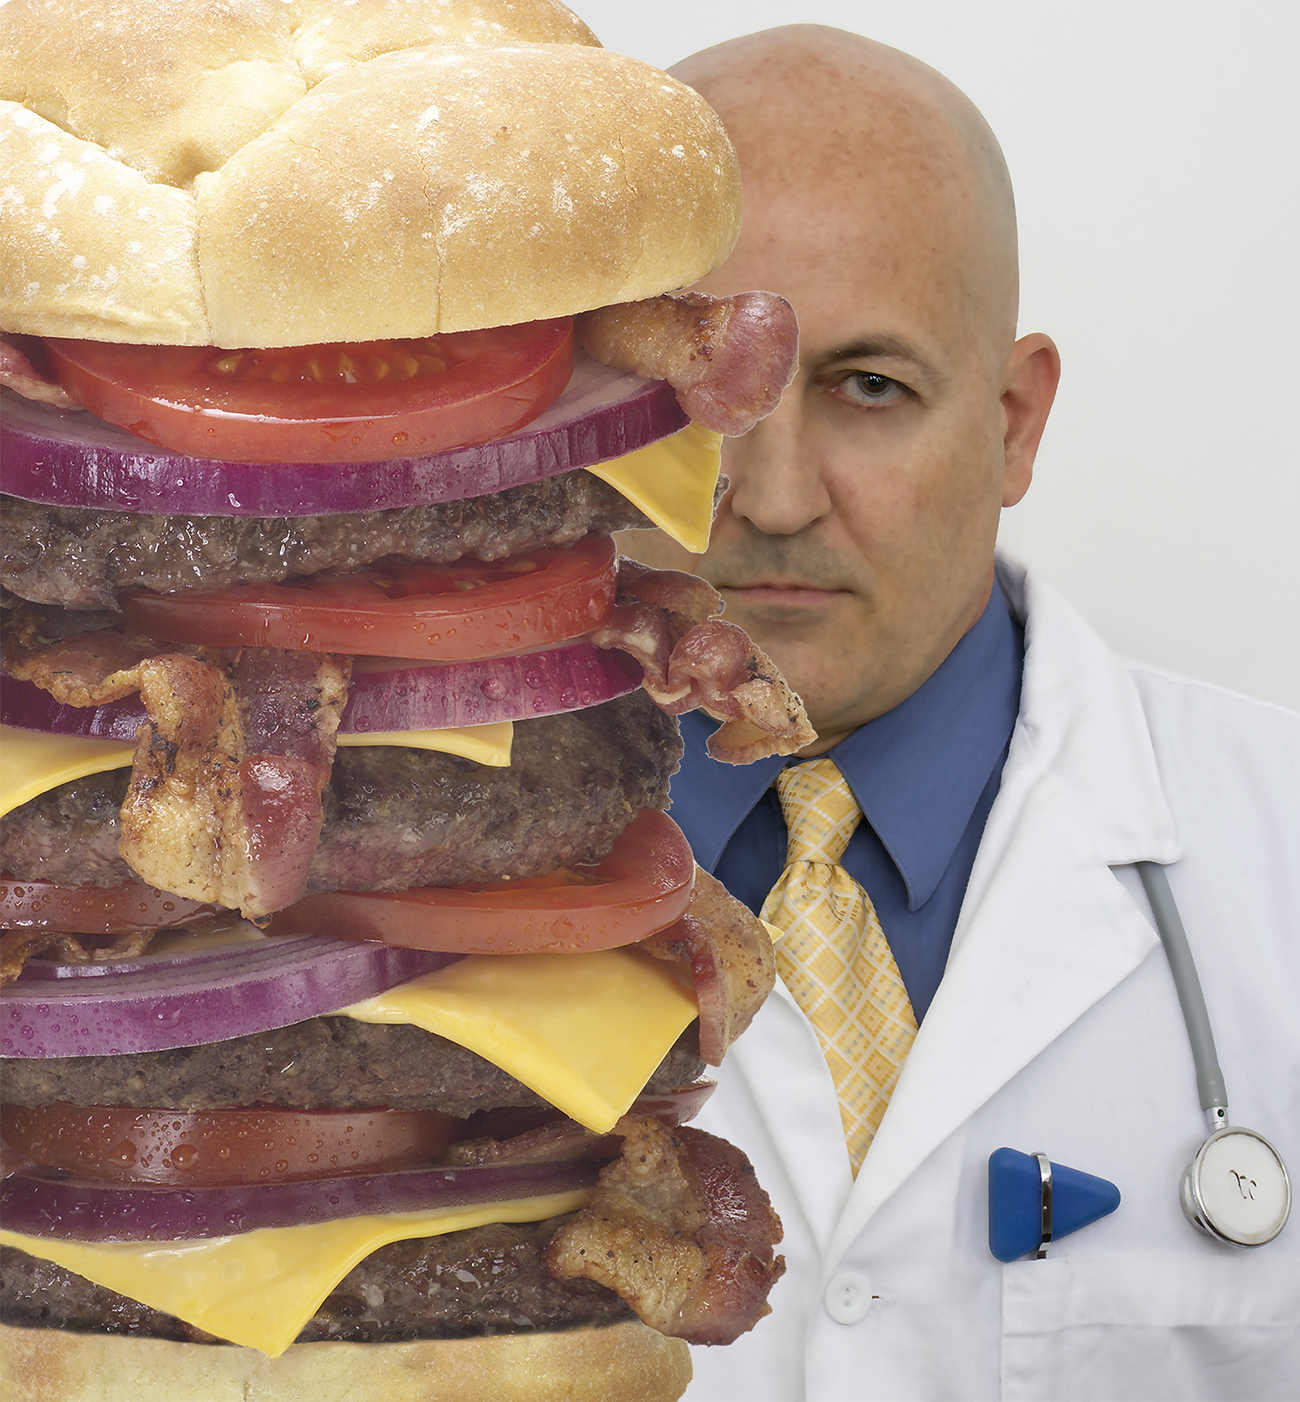 heart attack grill owner next to giant burger